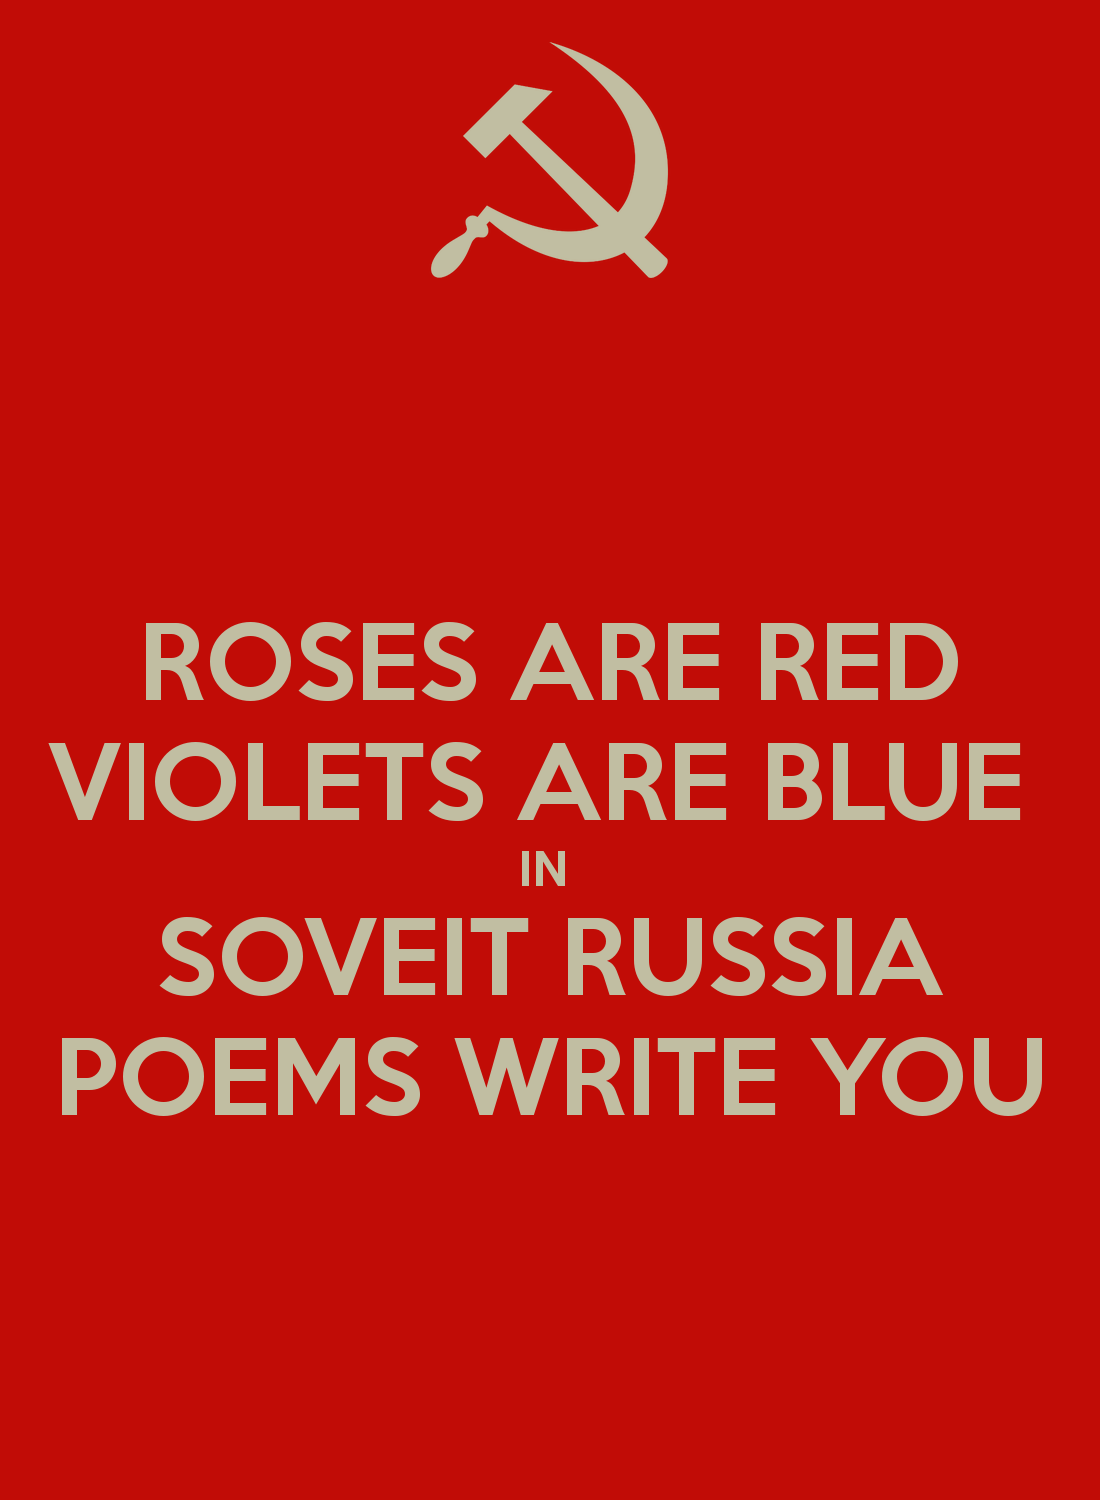 Red Jokes Are Dirty Roses Violets Are Blue